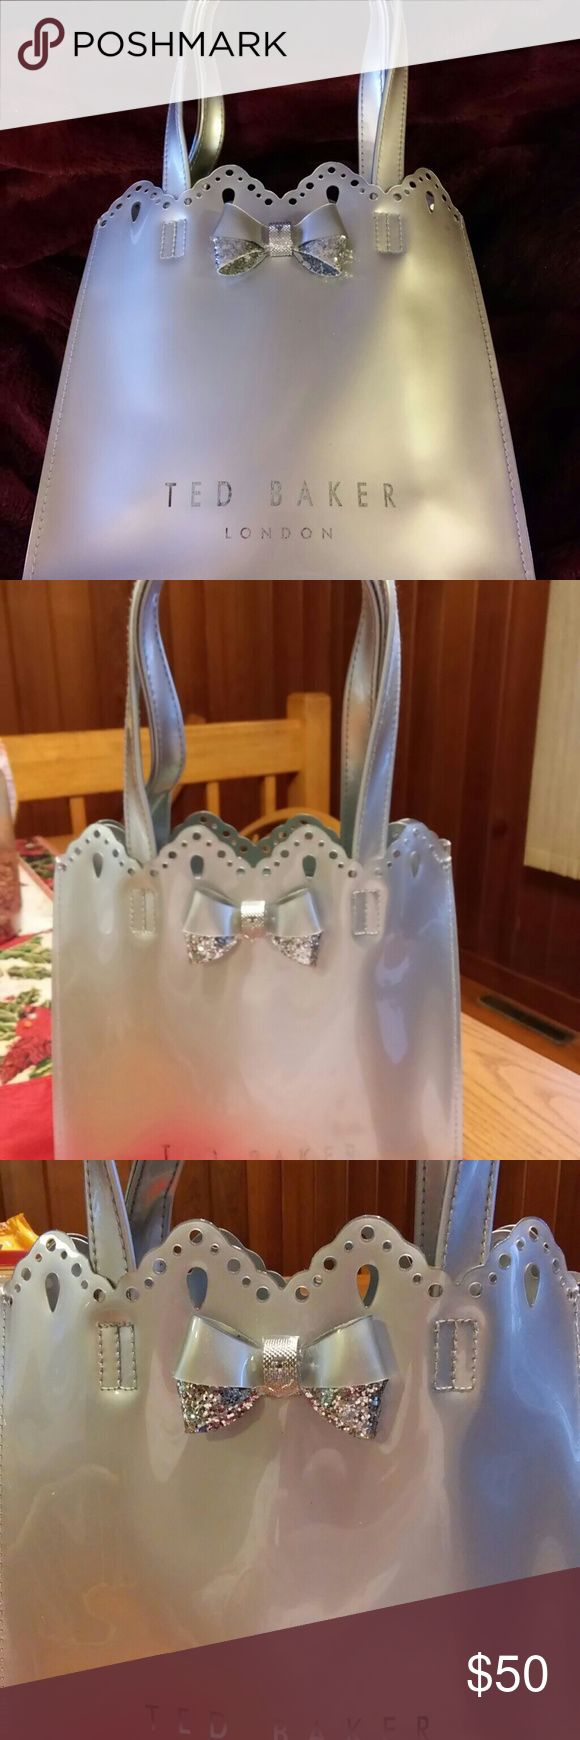 NWOT PVC Tote by Ted Baker 1HR SALE Great silver scalloped shopping tote with inside zippered pouch Ted Baker London Bags Totes